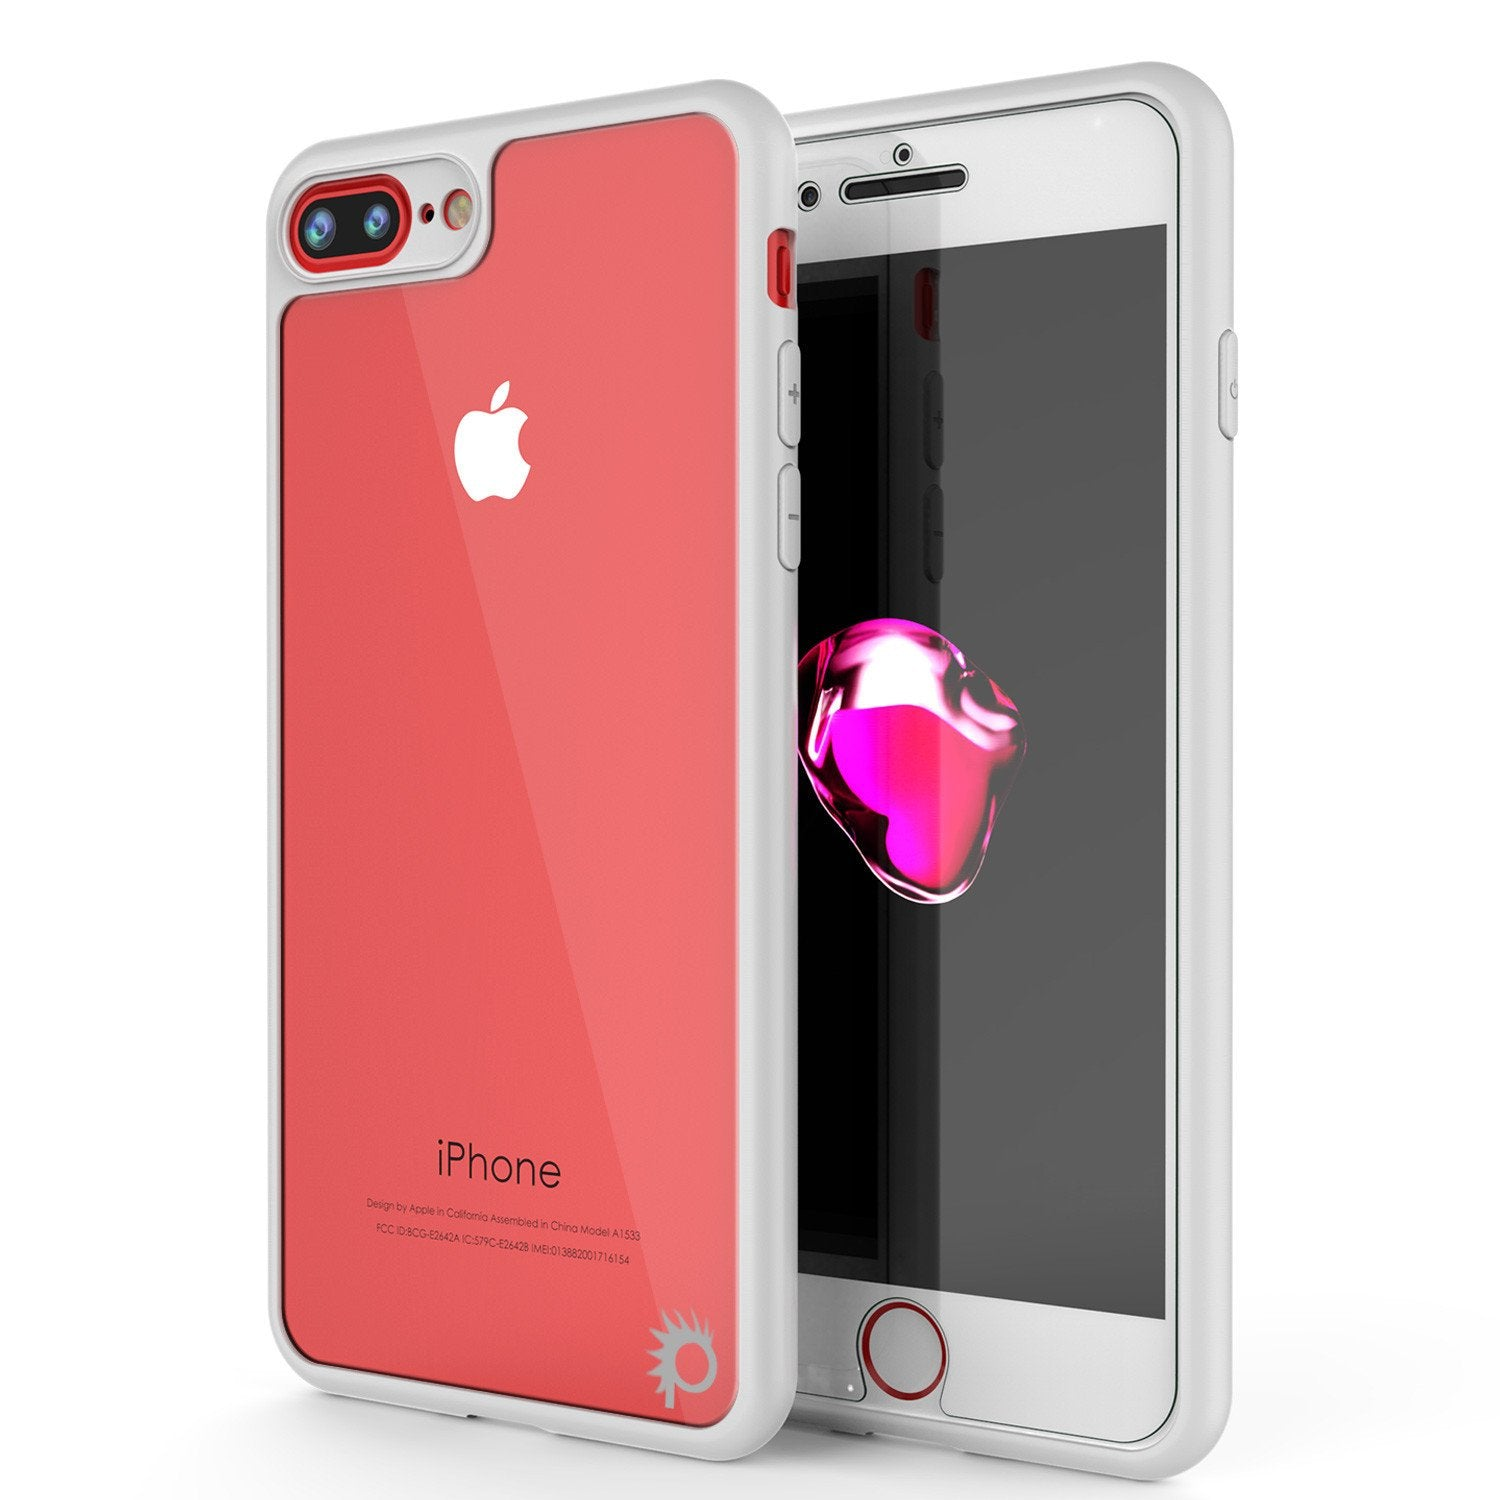 iPhone 7 PLUS Case, Punkcase MASK Series Ultra Thin Cover [WHITE]